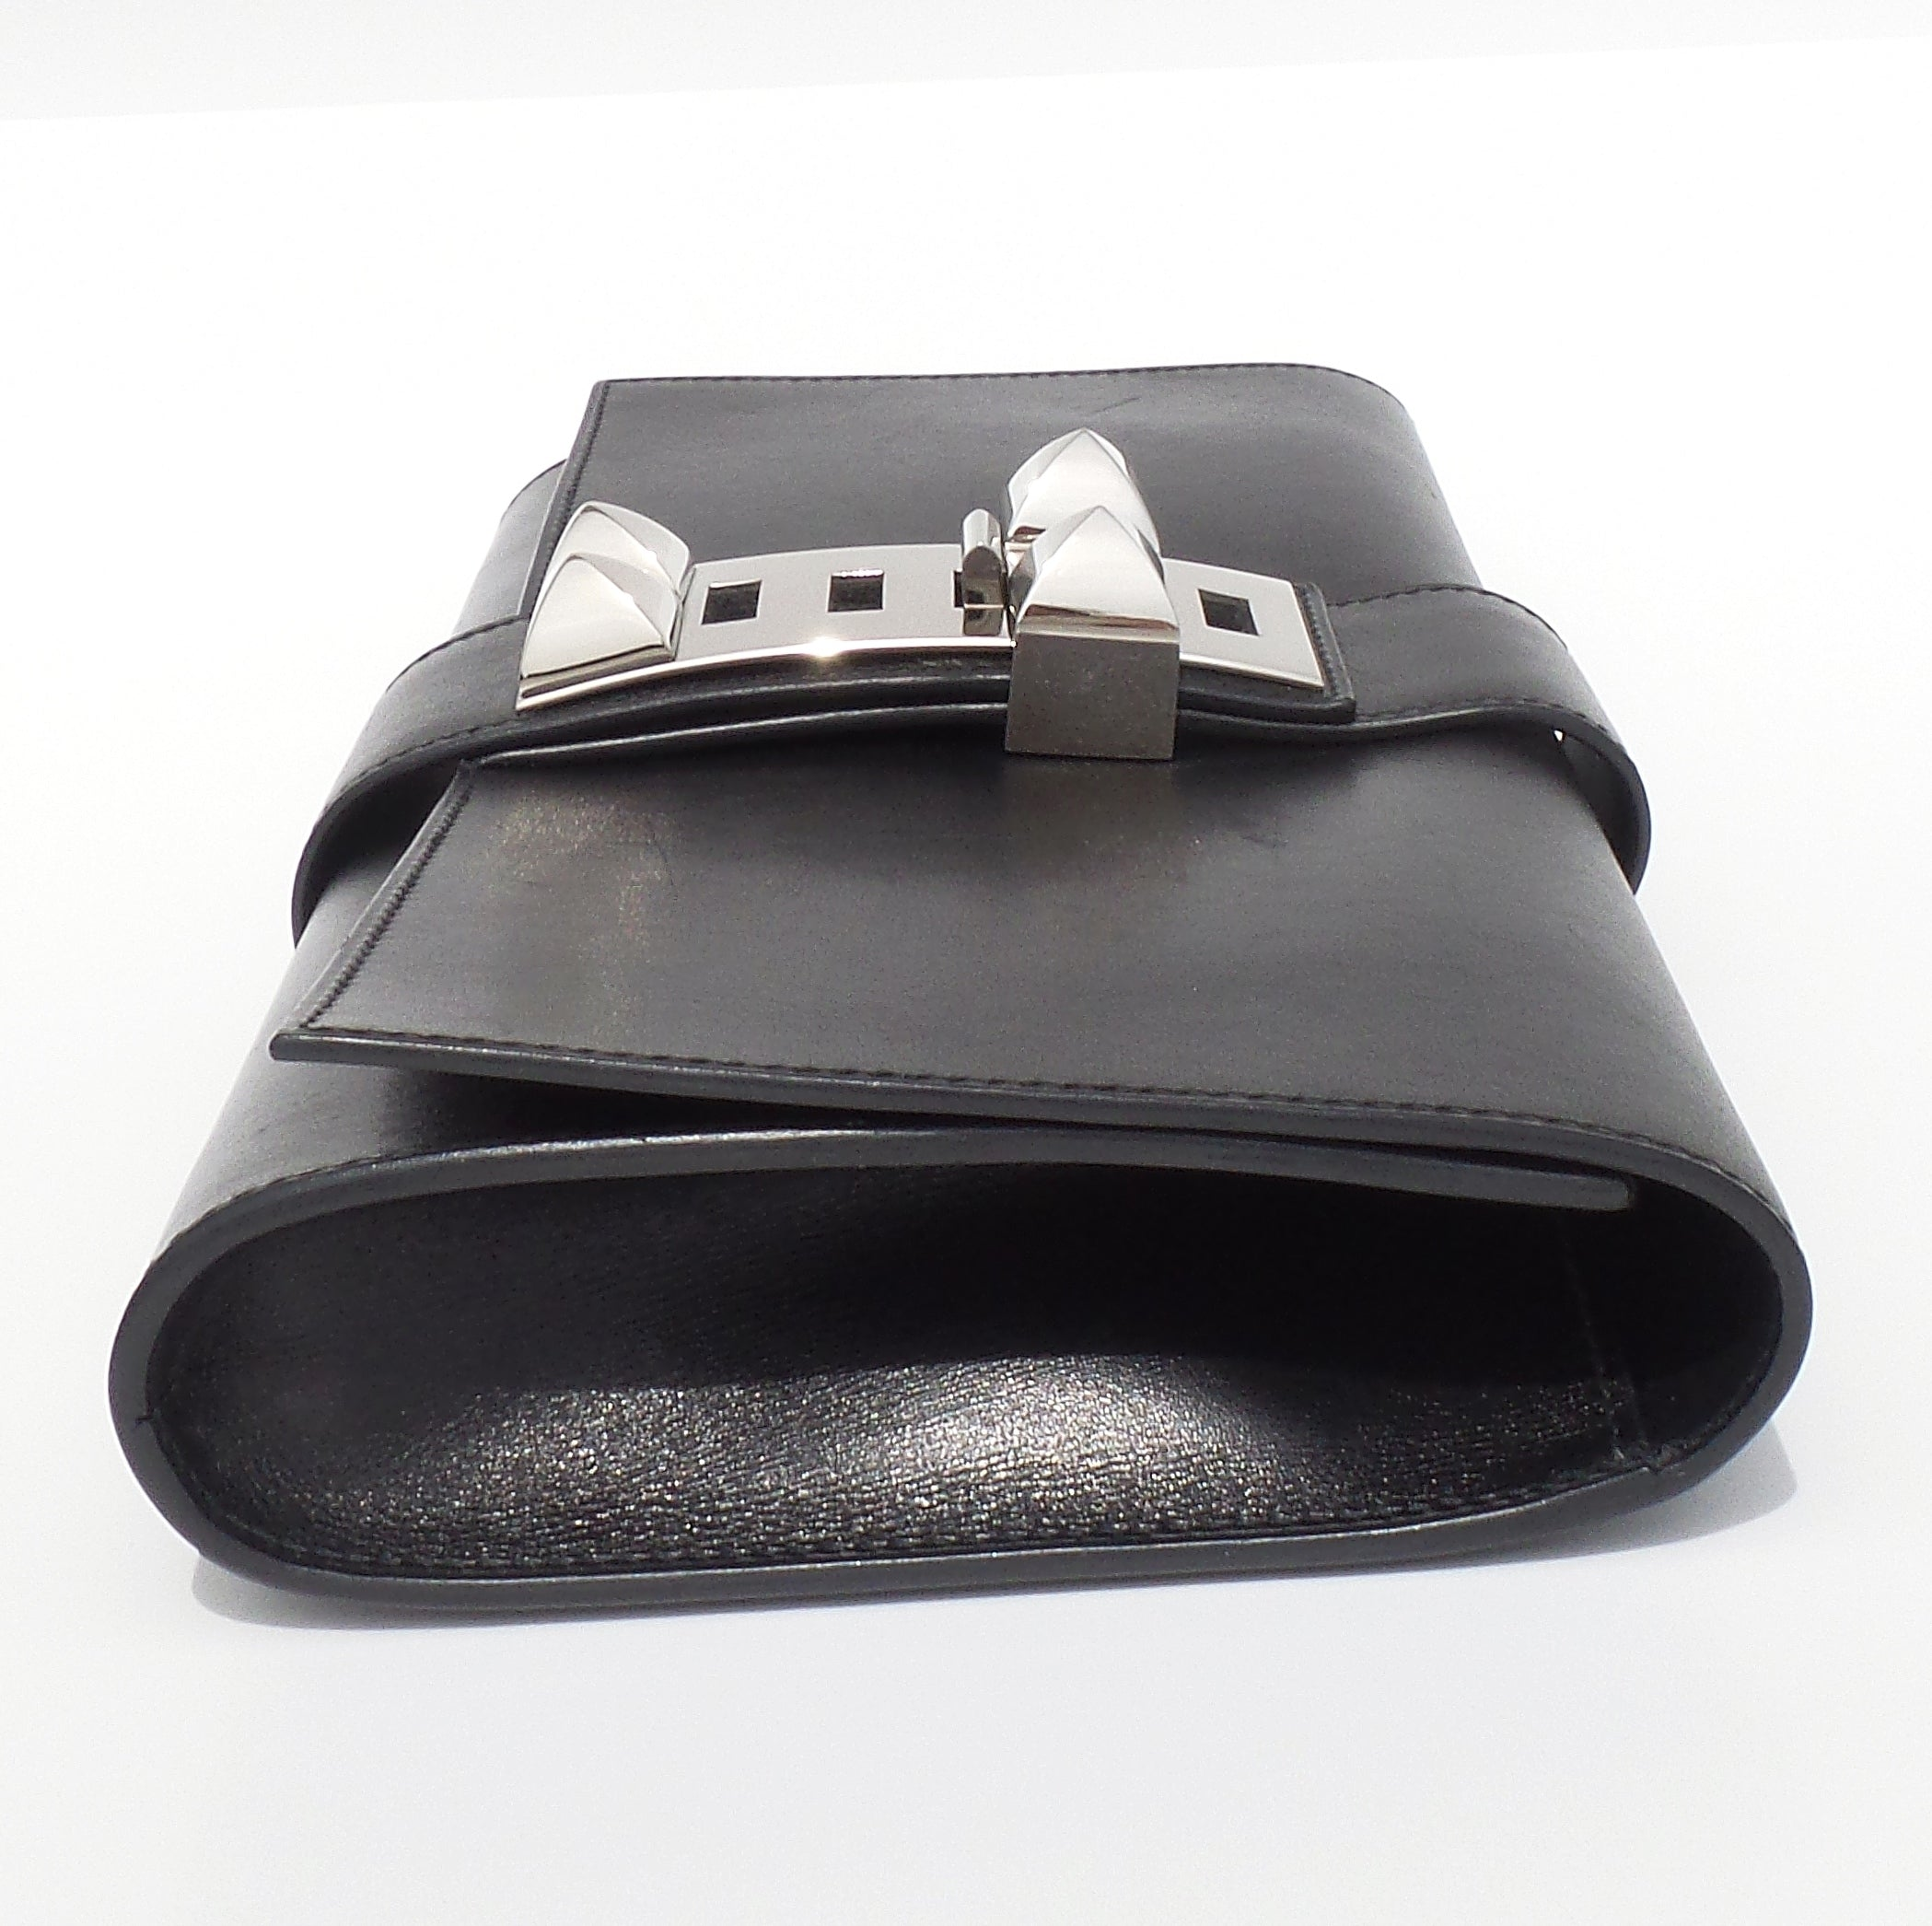 'Sold' HERMES Medor 29 Black Box Leather Palladium Hardware Collier De Chien Clutch CDC